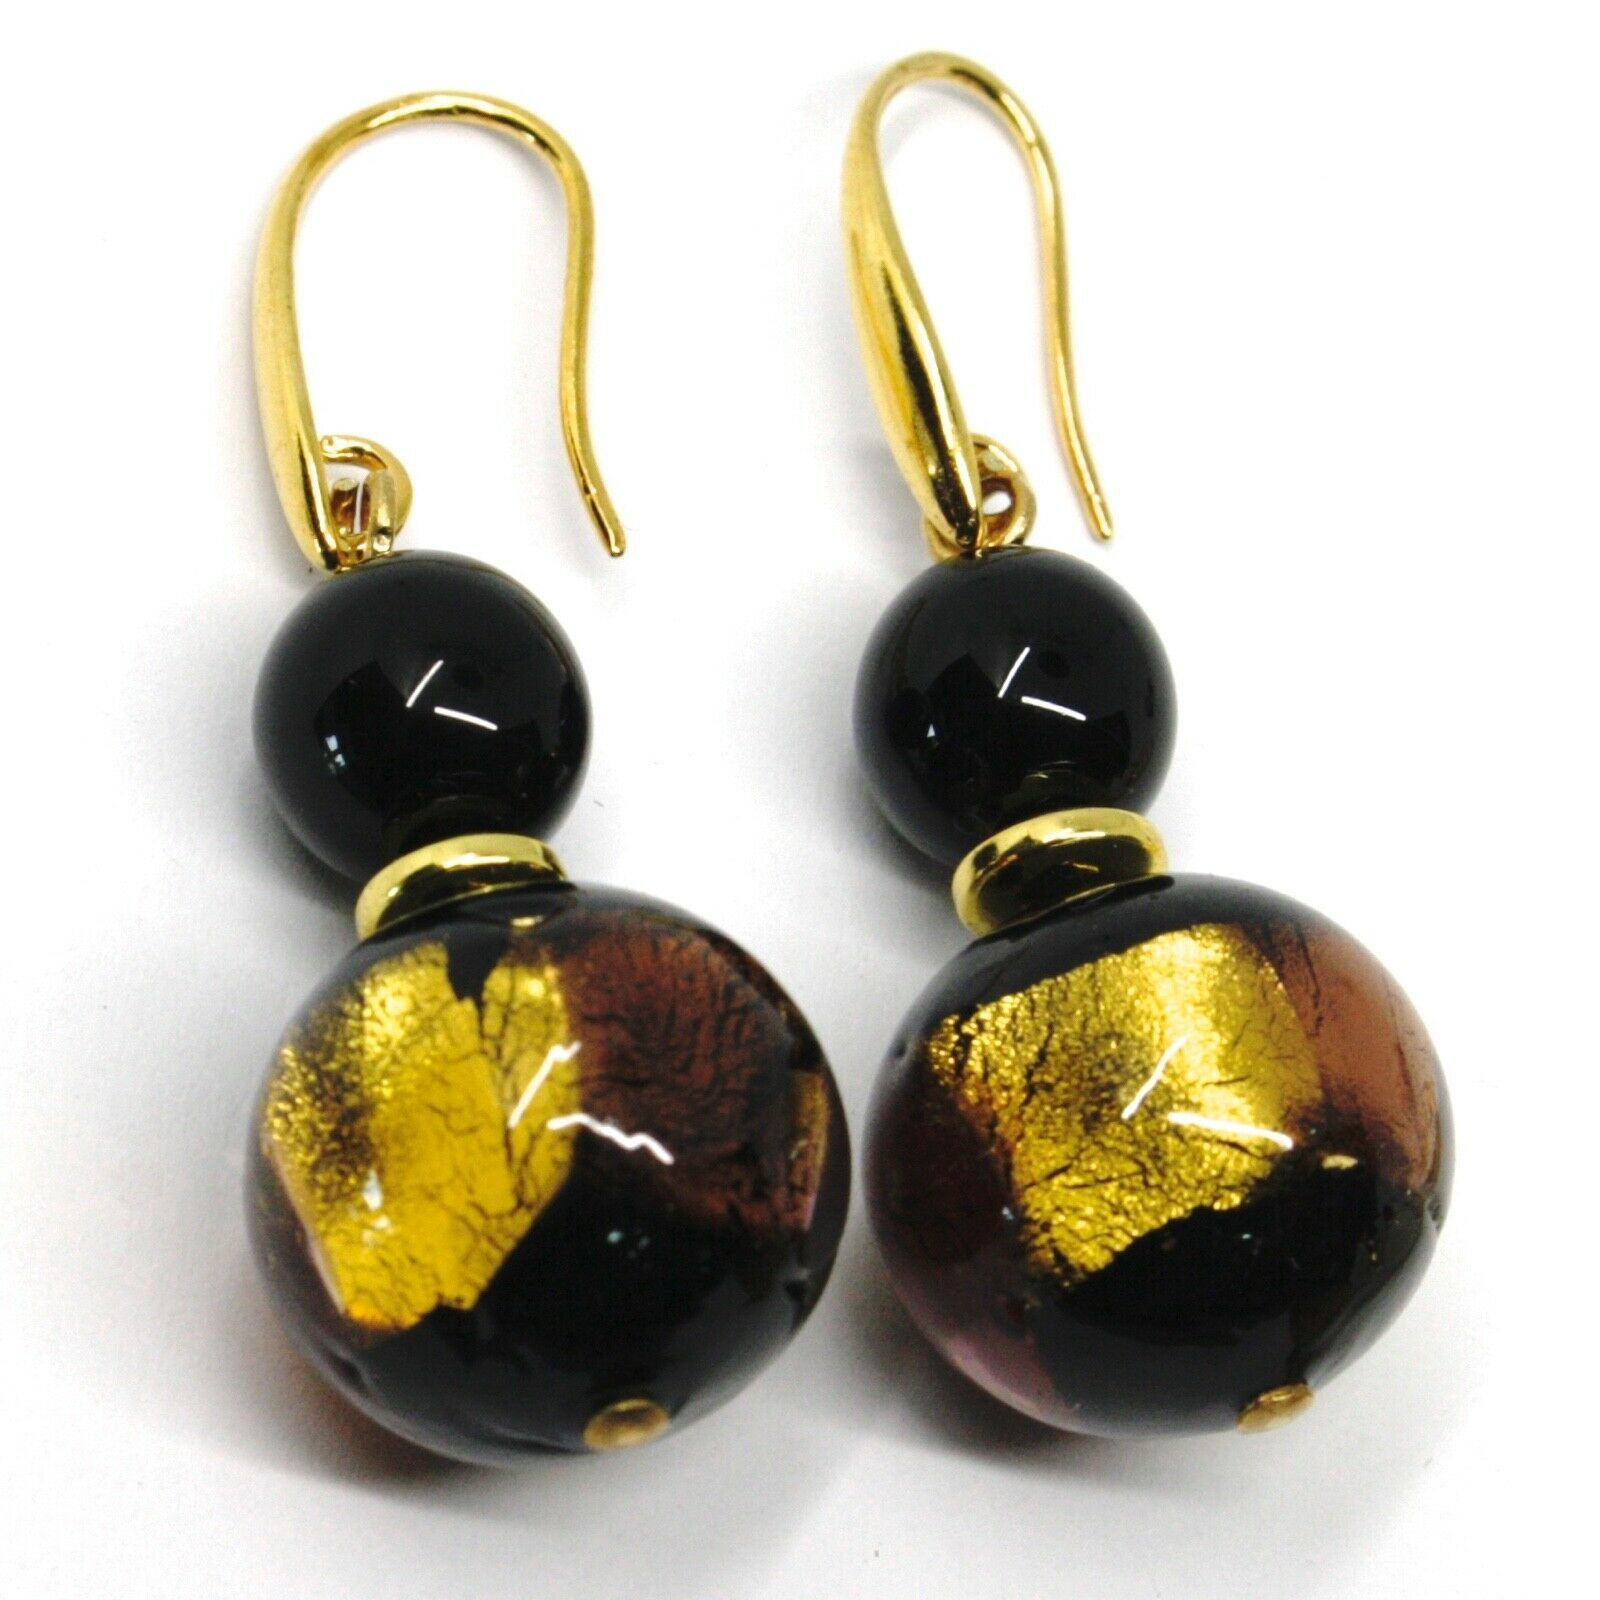 PENDANT EARRINGS BLACK MURANO GLASS SPHERE & GOLD LEAF, MADE IN ITALY